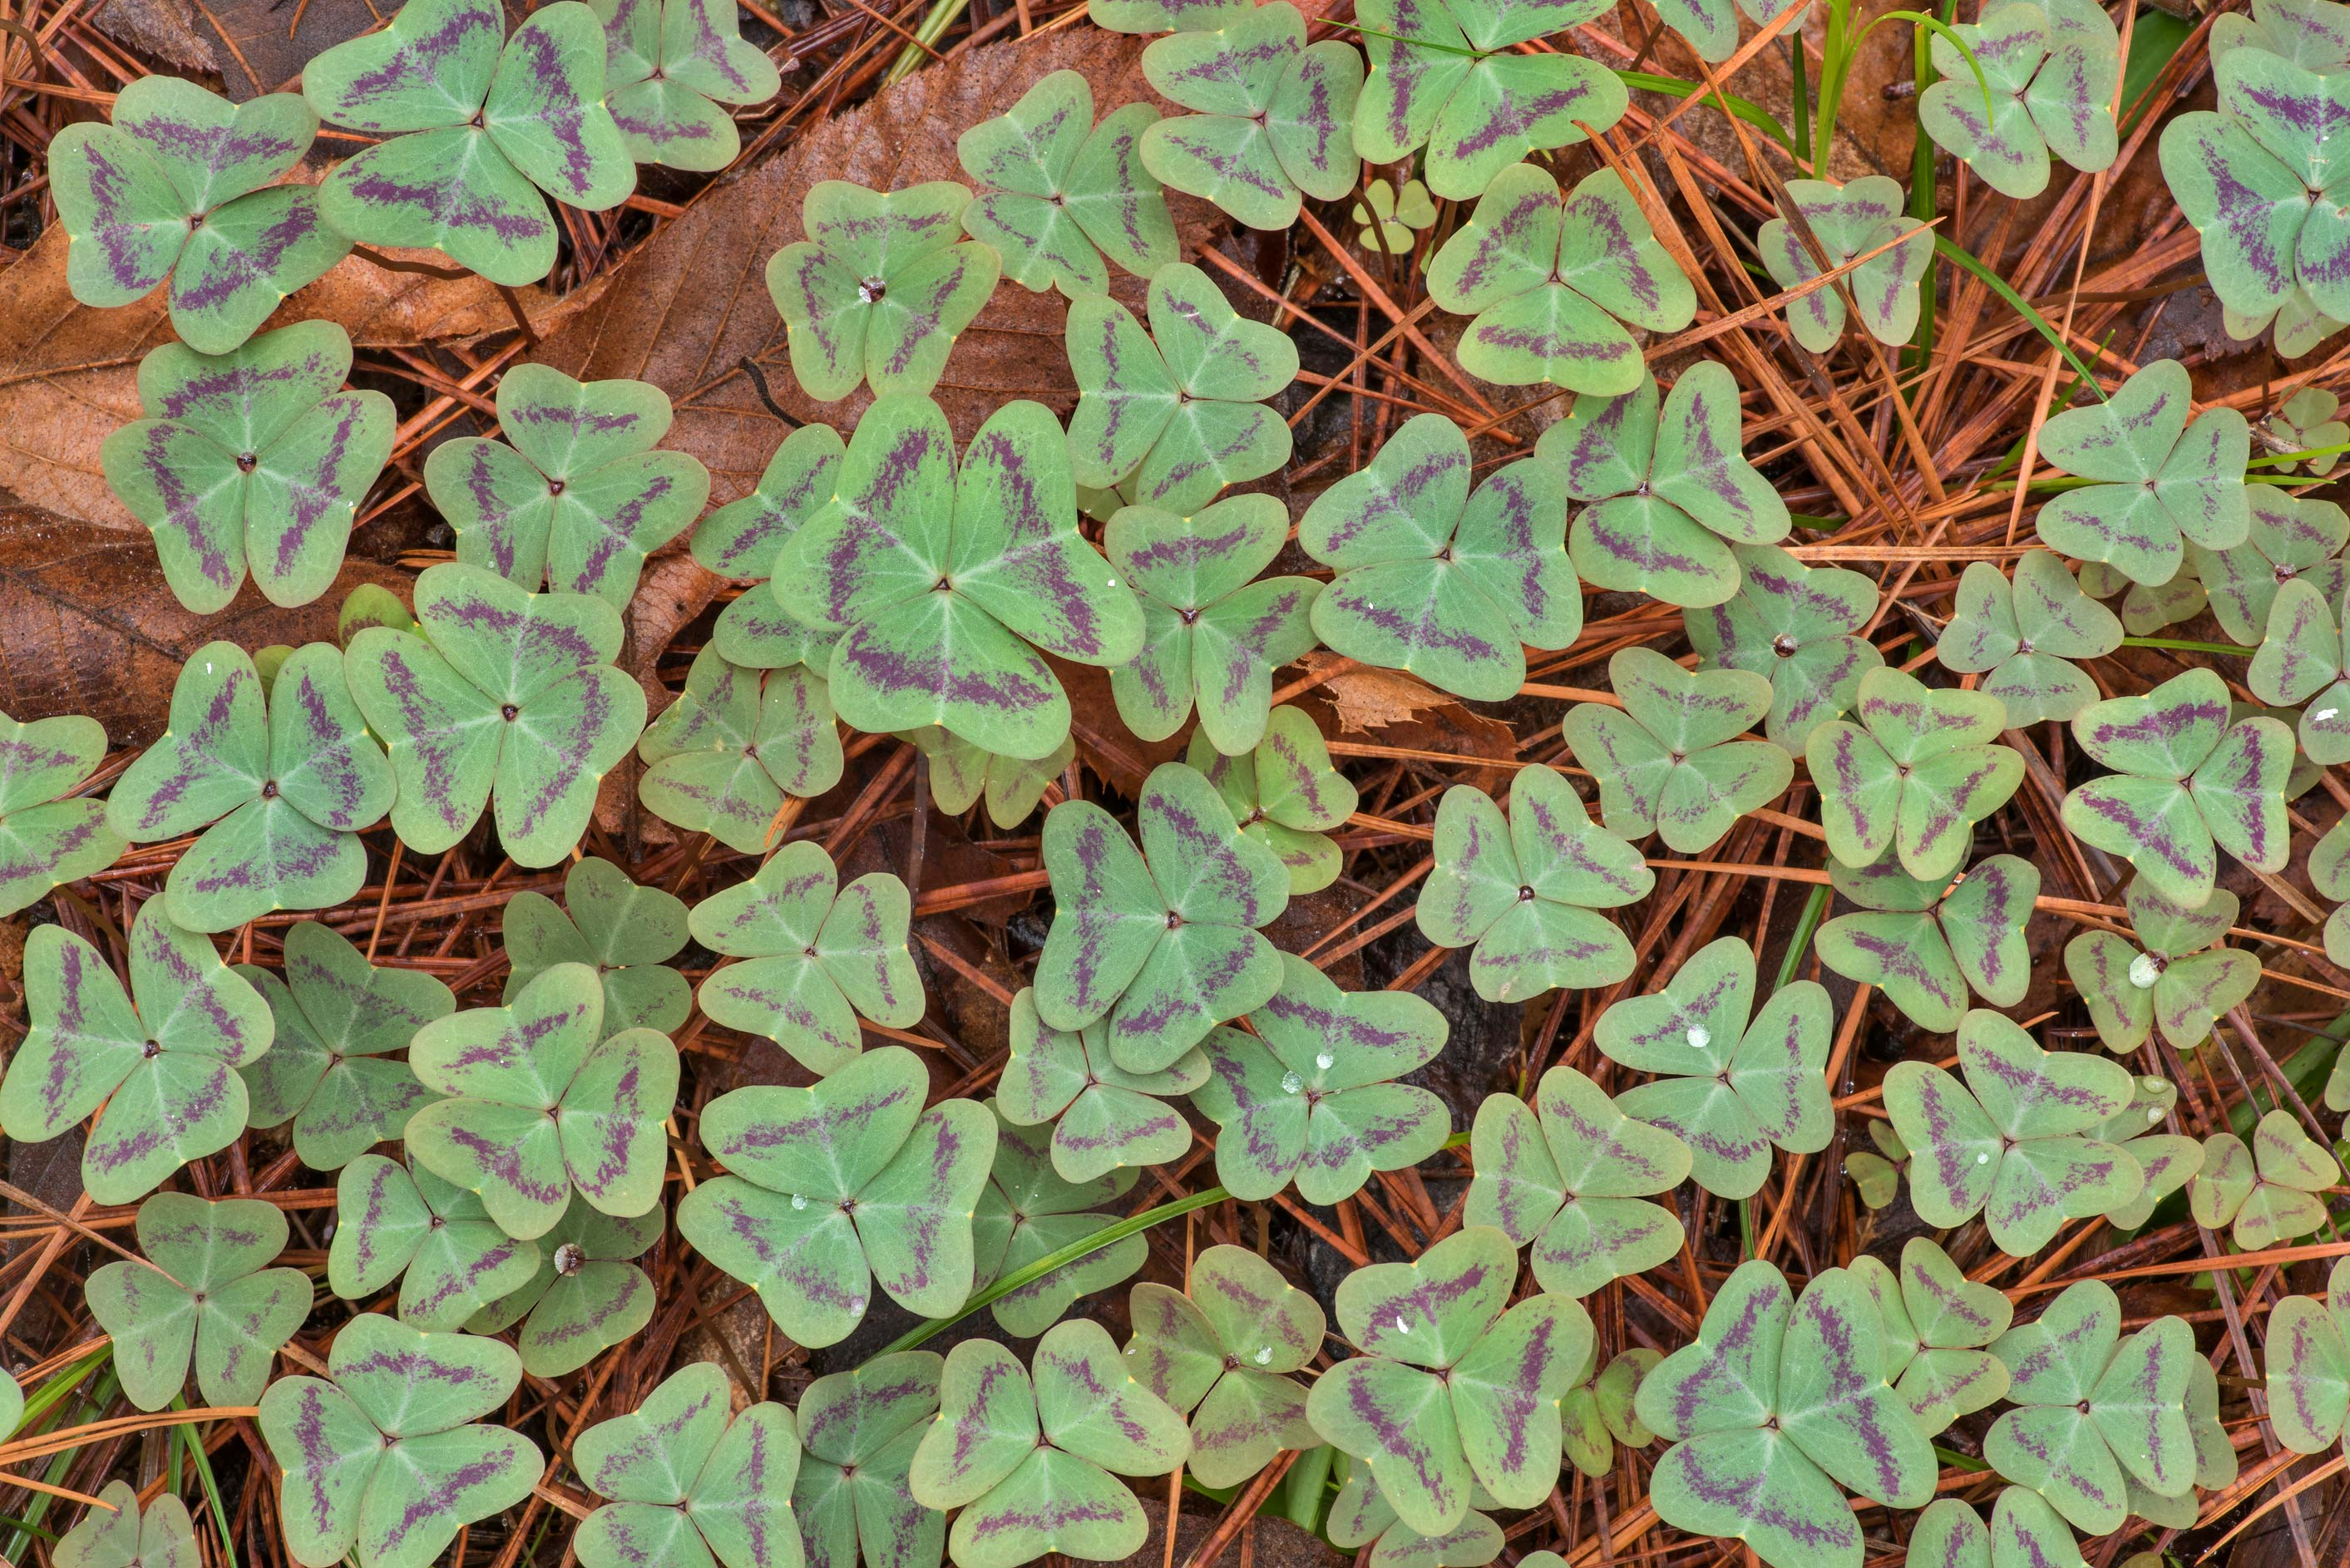 Carpet of leaves of violet woodsorrel (Oxalis...National Forest. Richards, Texas